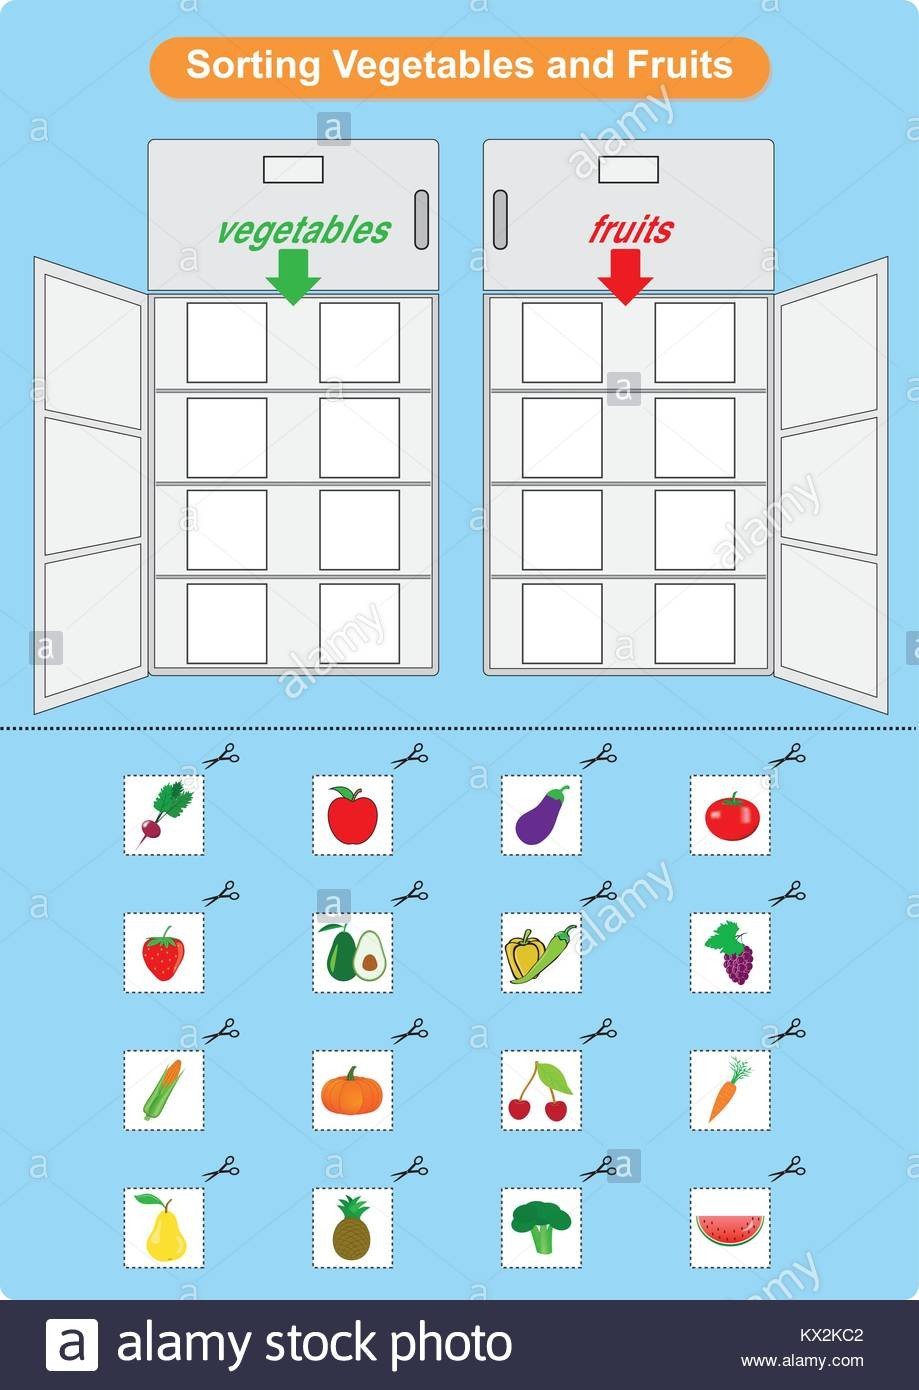 sorting fruits and ve ables in refrigerator worksheet for kindergarten KX2KC2